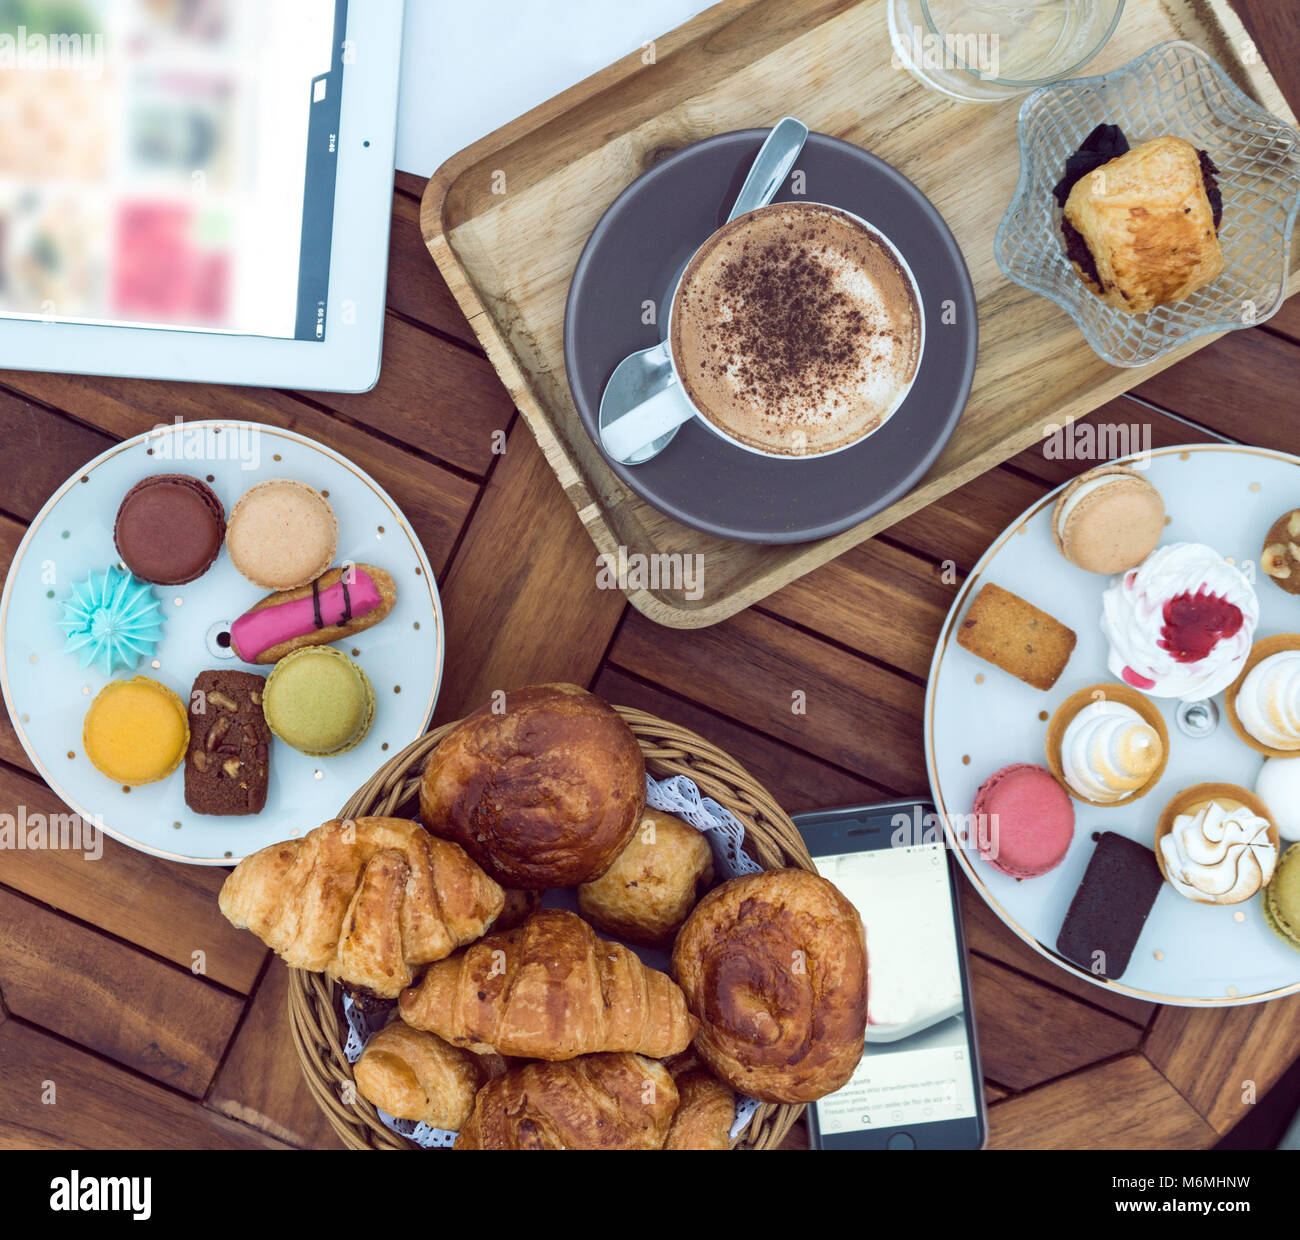 coffee and pastry - Stock Image